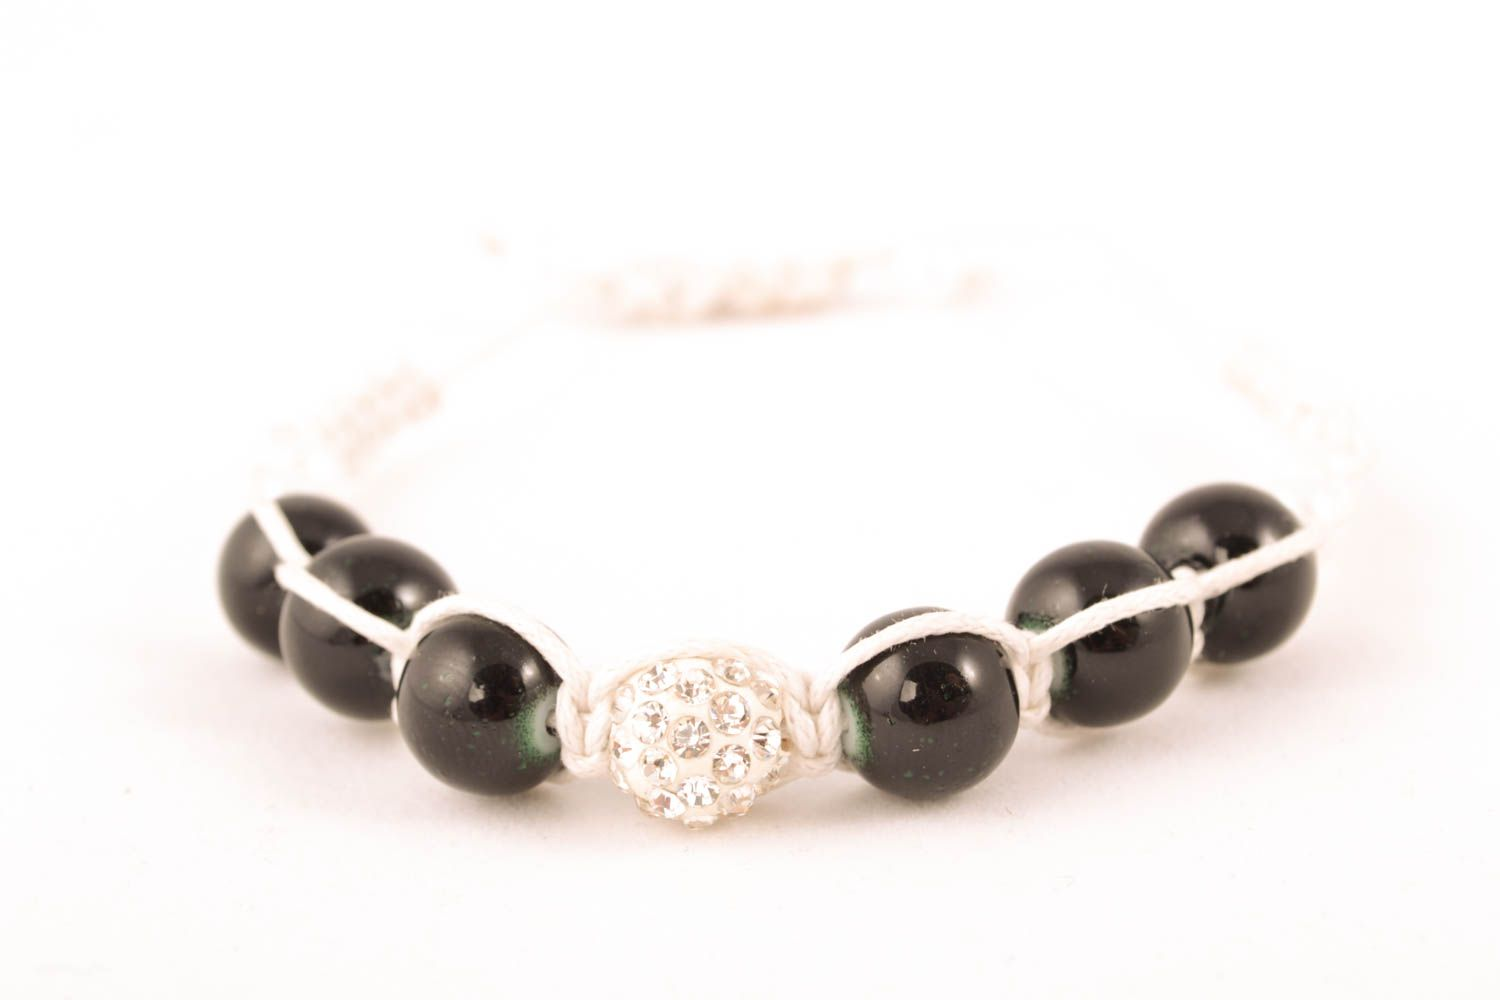 Woven bracelet with black beads photo 3